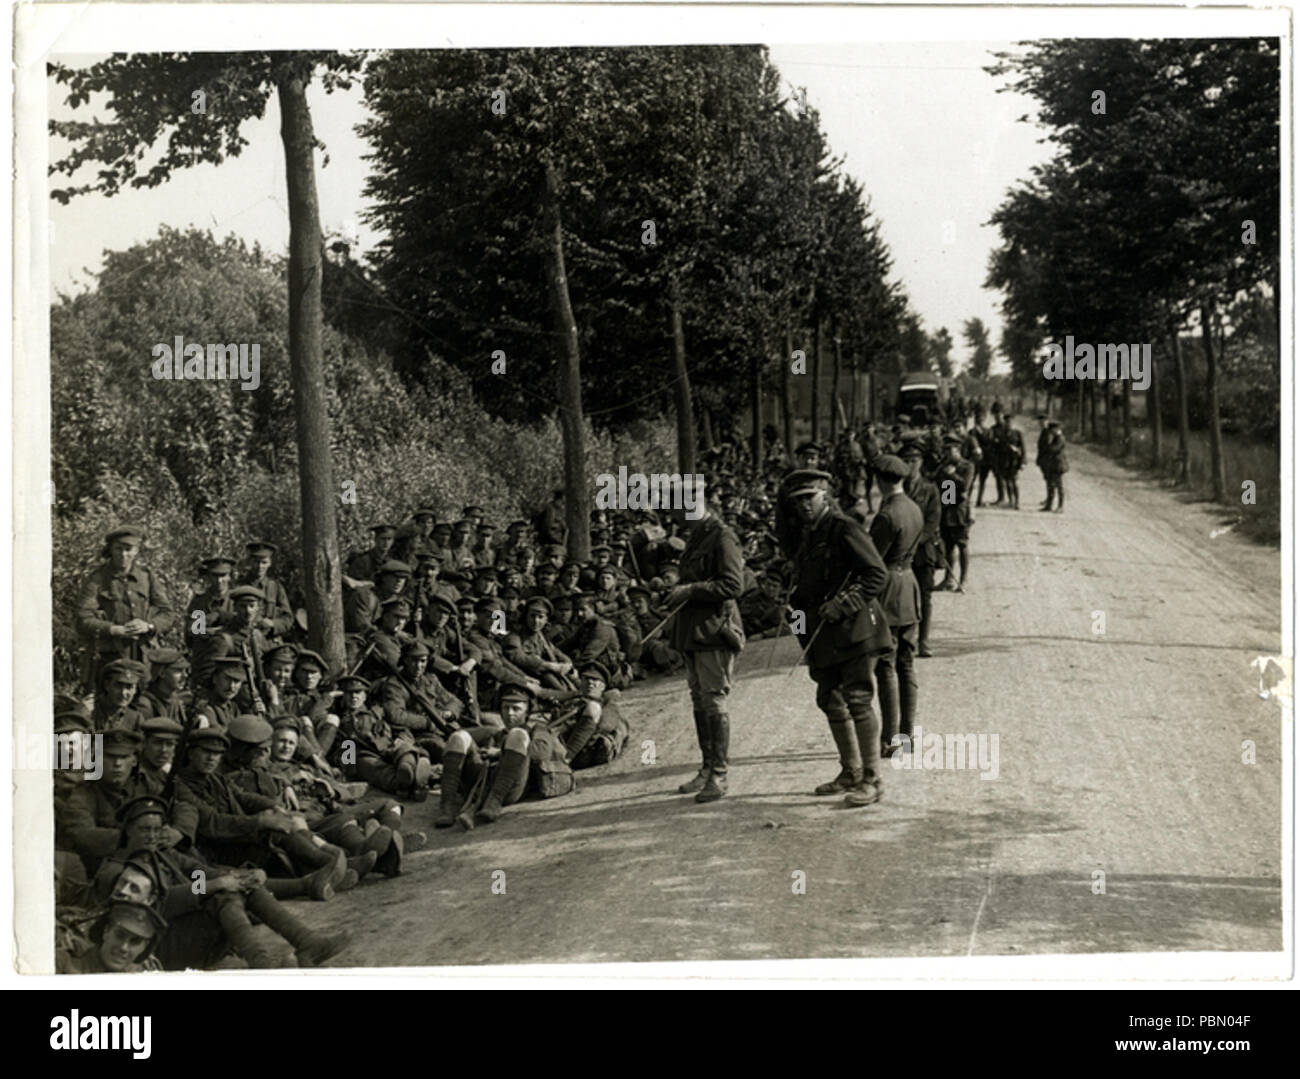 932 London Territorials resting on the march (Photo 24-235) - Stock Image